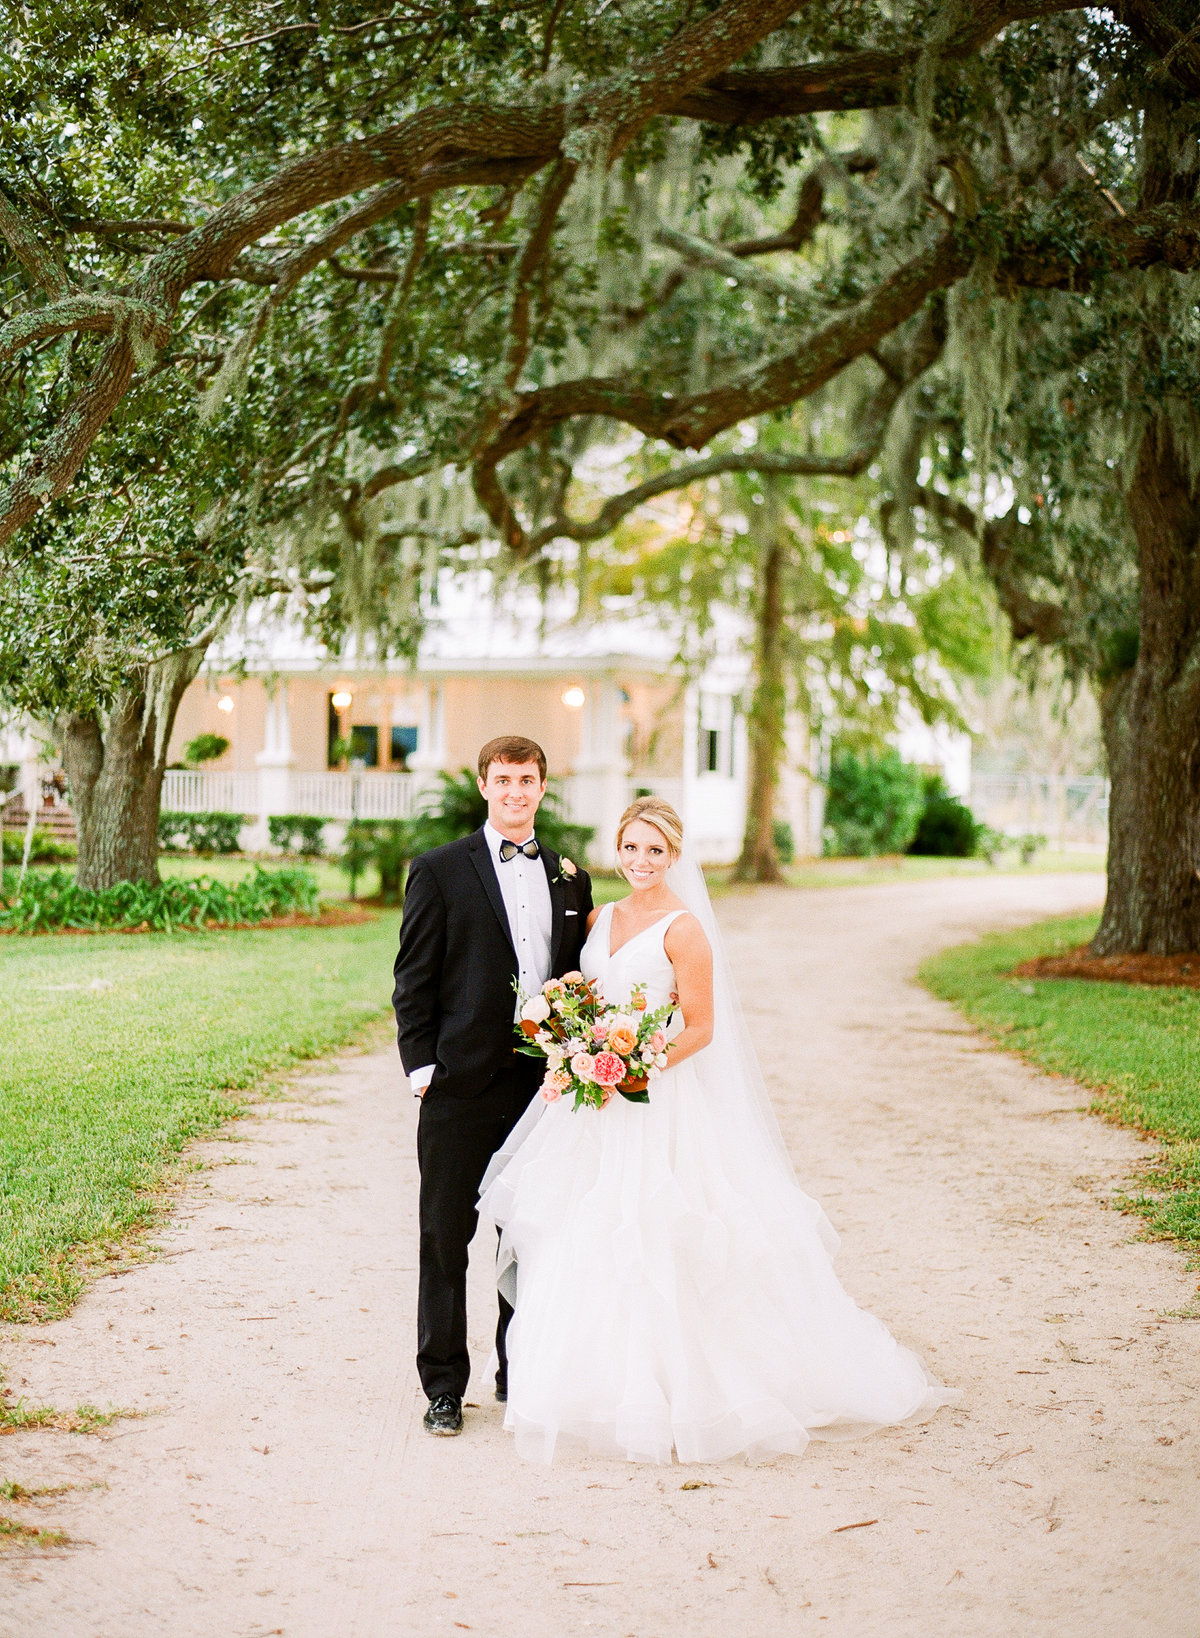 Classic Charleston Newlyweds Stand in front Classic White Plantation House under Spanish Moss Live Oaks Trees